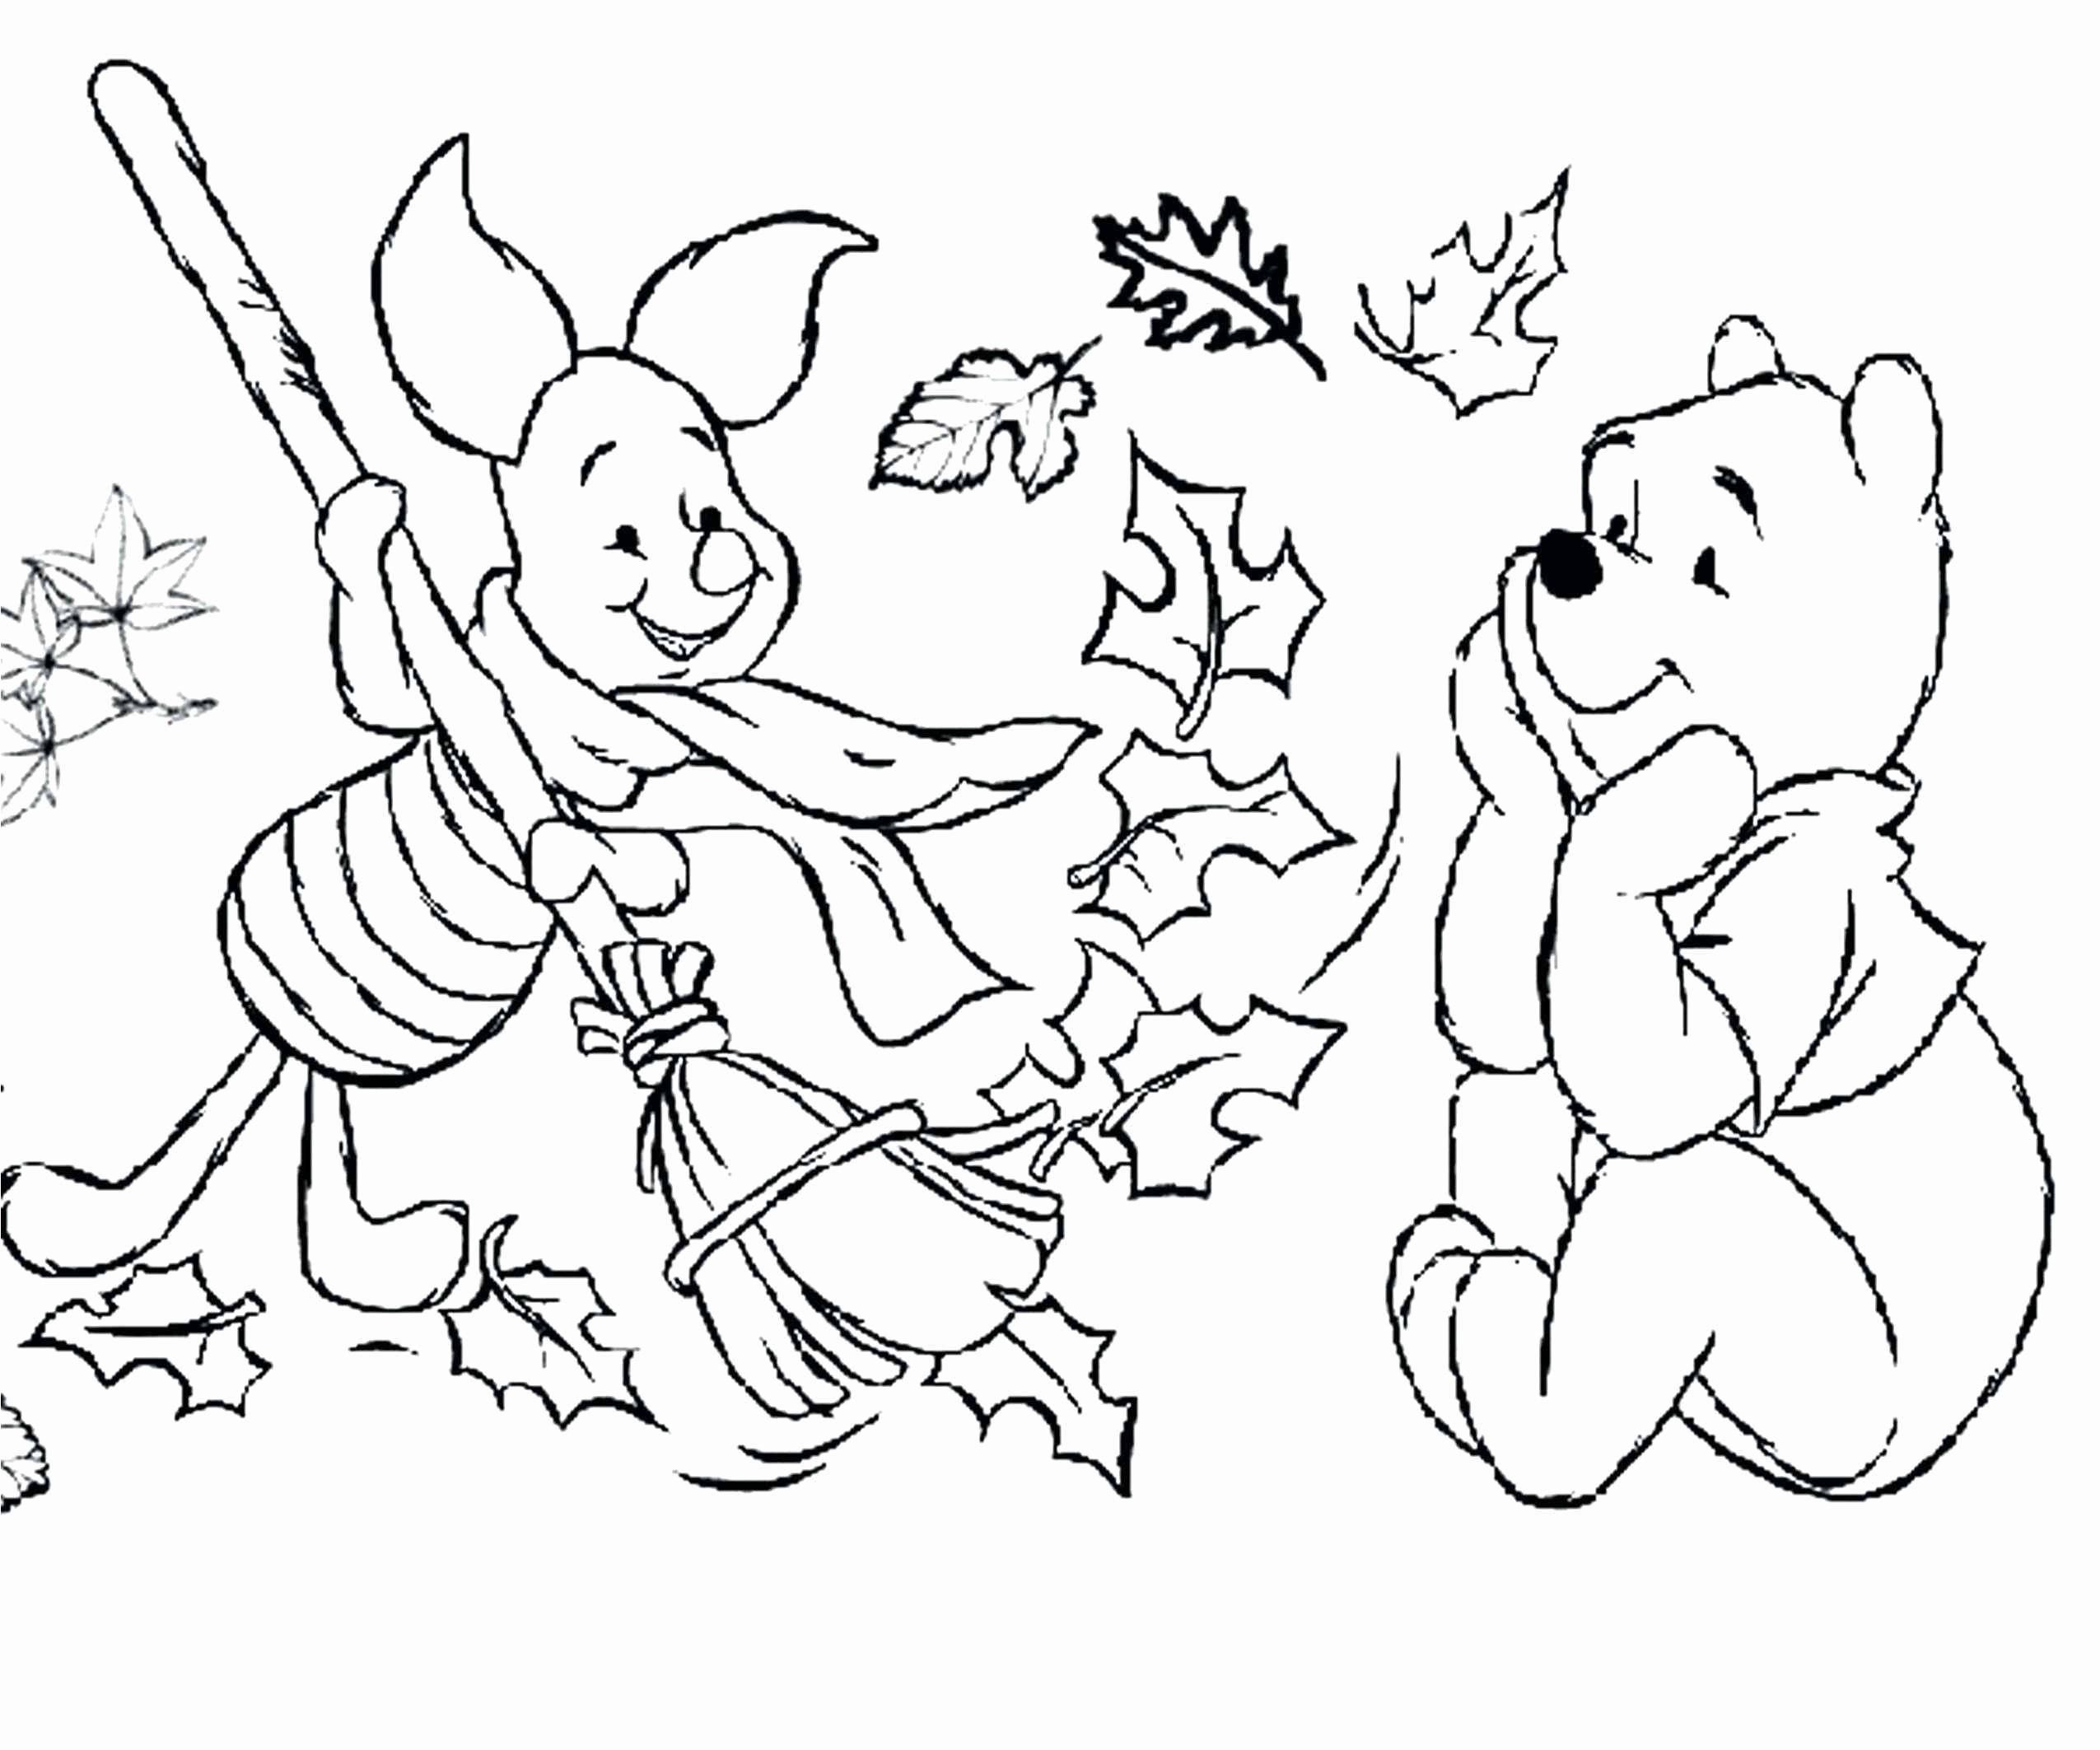 Fashion Design Coloring Book New Bts Coloring Pages Animal Coloring Pages Bear Coloring Pages Pokemon Coloring Pages